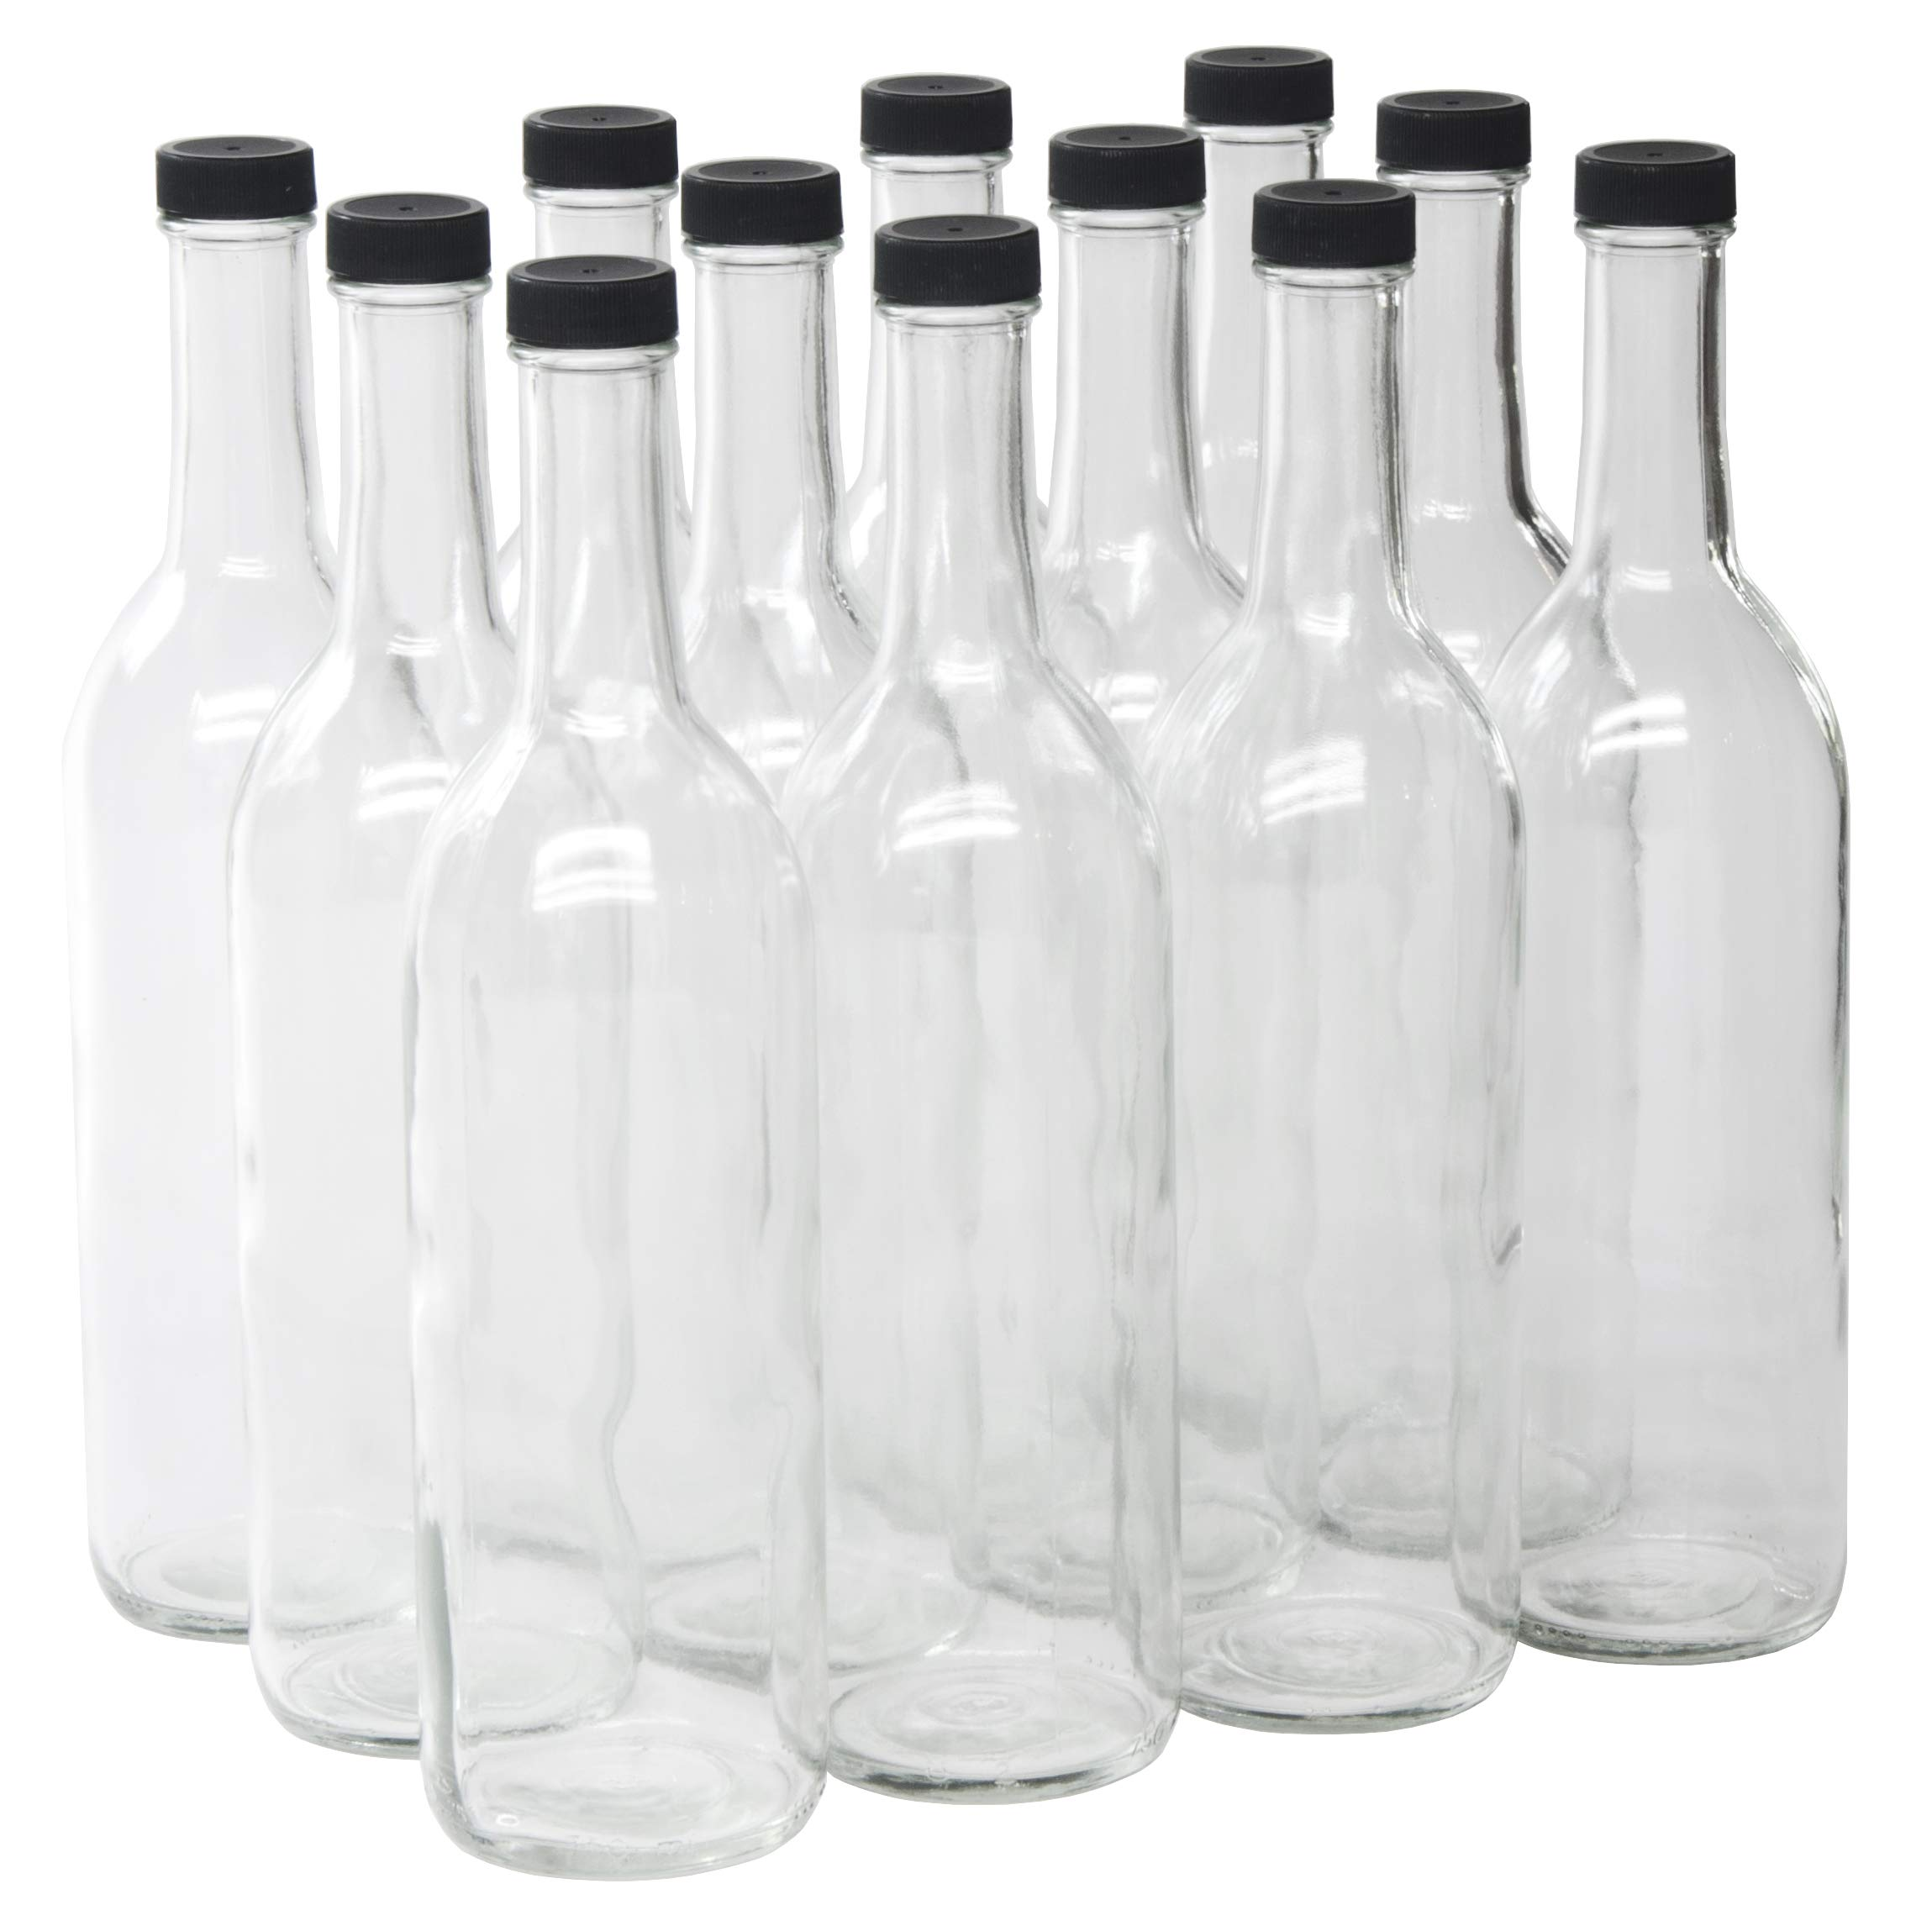 North Mountain Supply 750ml Clear Glass Bordeaux Wine Bottle Flat-Bottomed Screw-Top Finish - with 28mm Black Plastic Lids - Case of 12 by North Mountain Supply